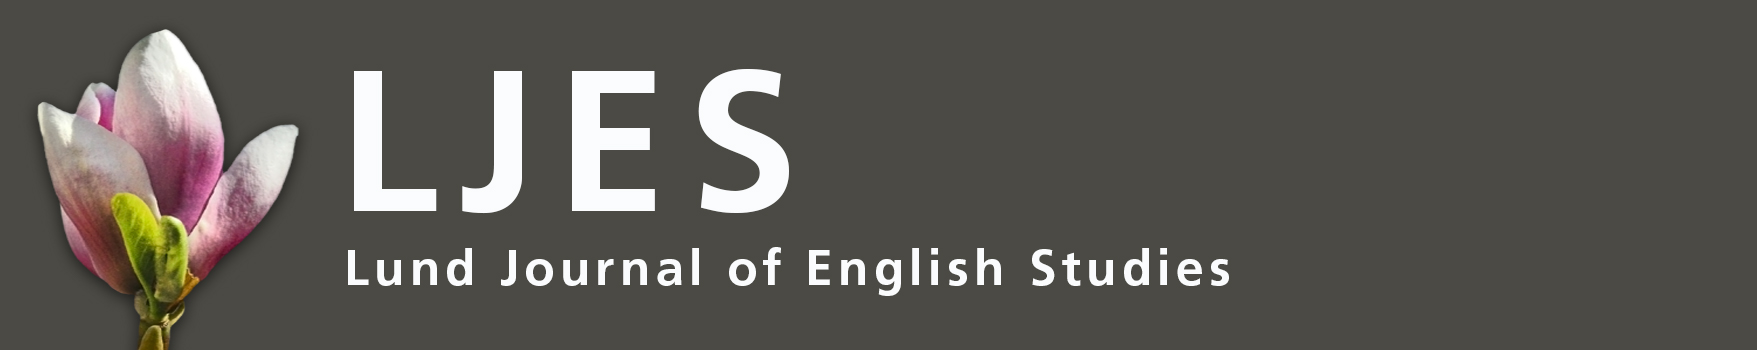 Lund Journal of English Studies